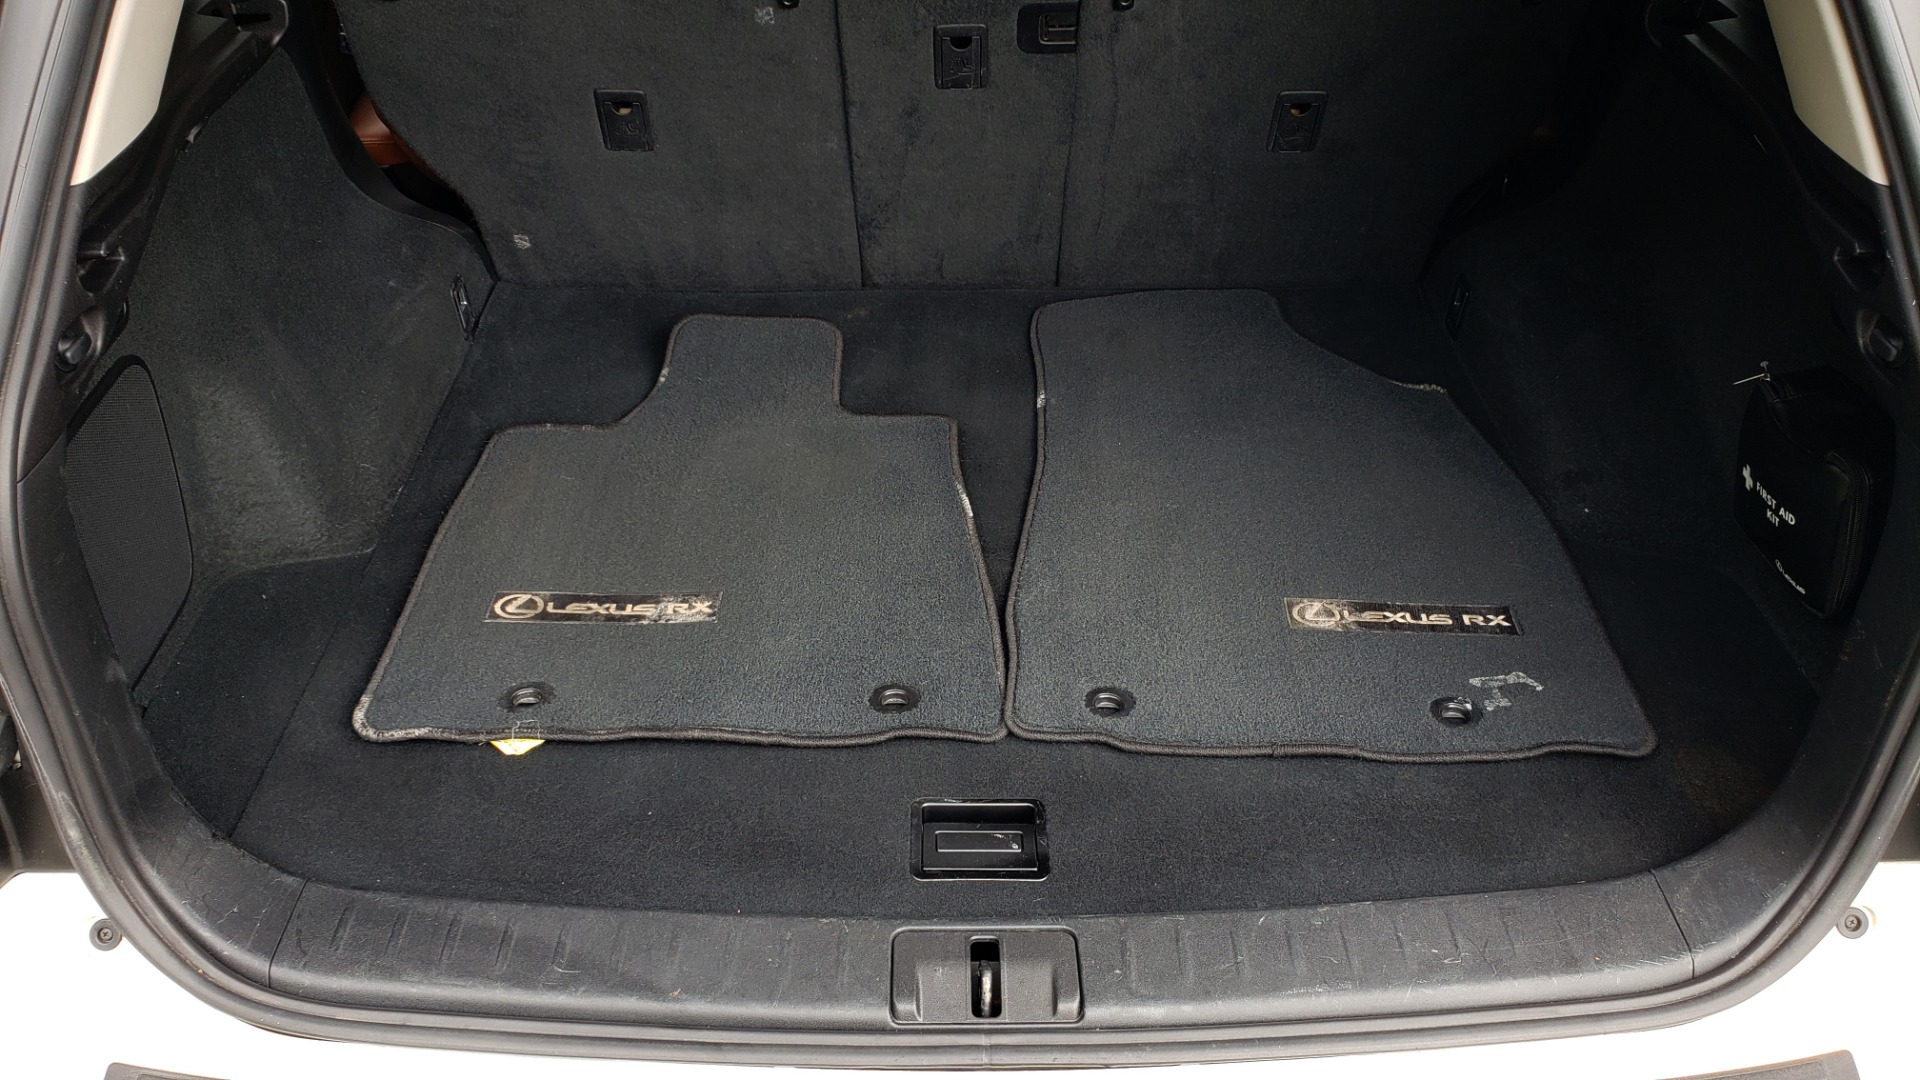 Used 2013 Lexus RX 350 PREMIUM PKG / SUNROOF / BSM / PARK ASST / REARVIEW for sale Sold at Formula Imports in Charlotte NC 28227 13